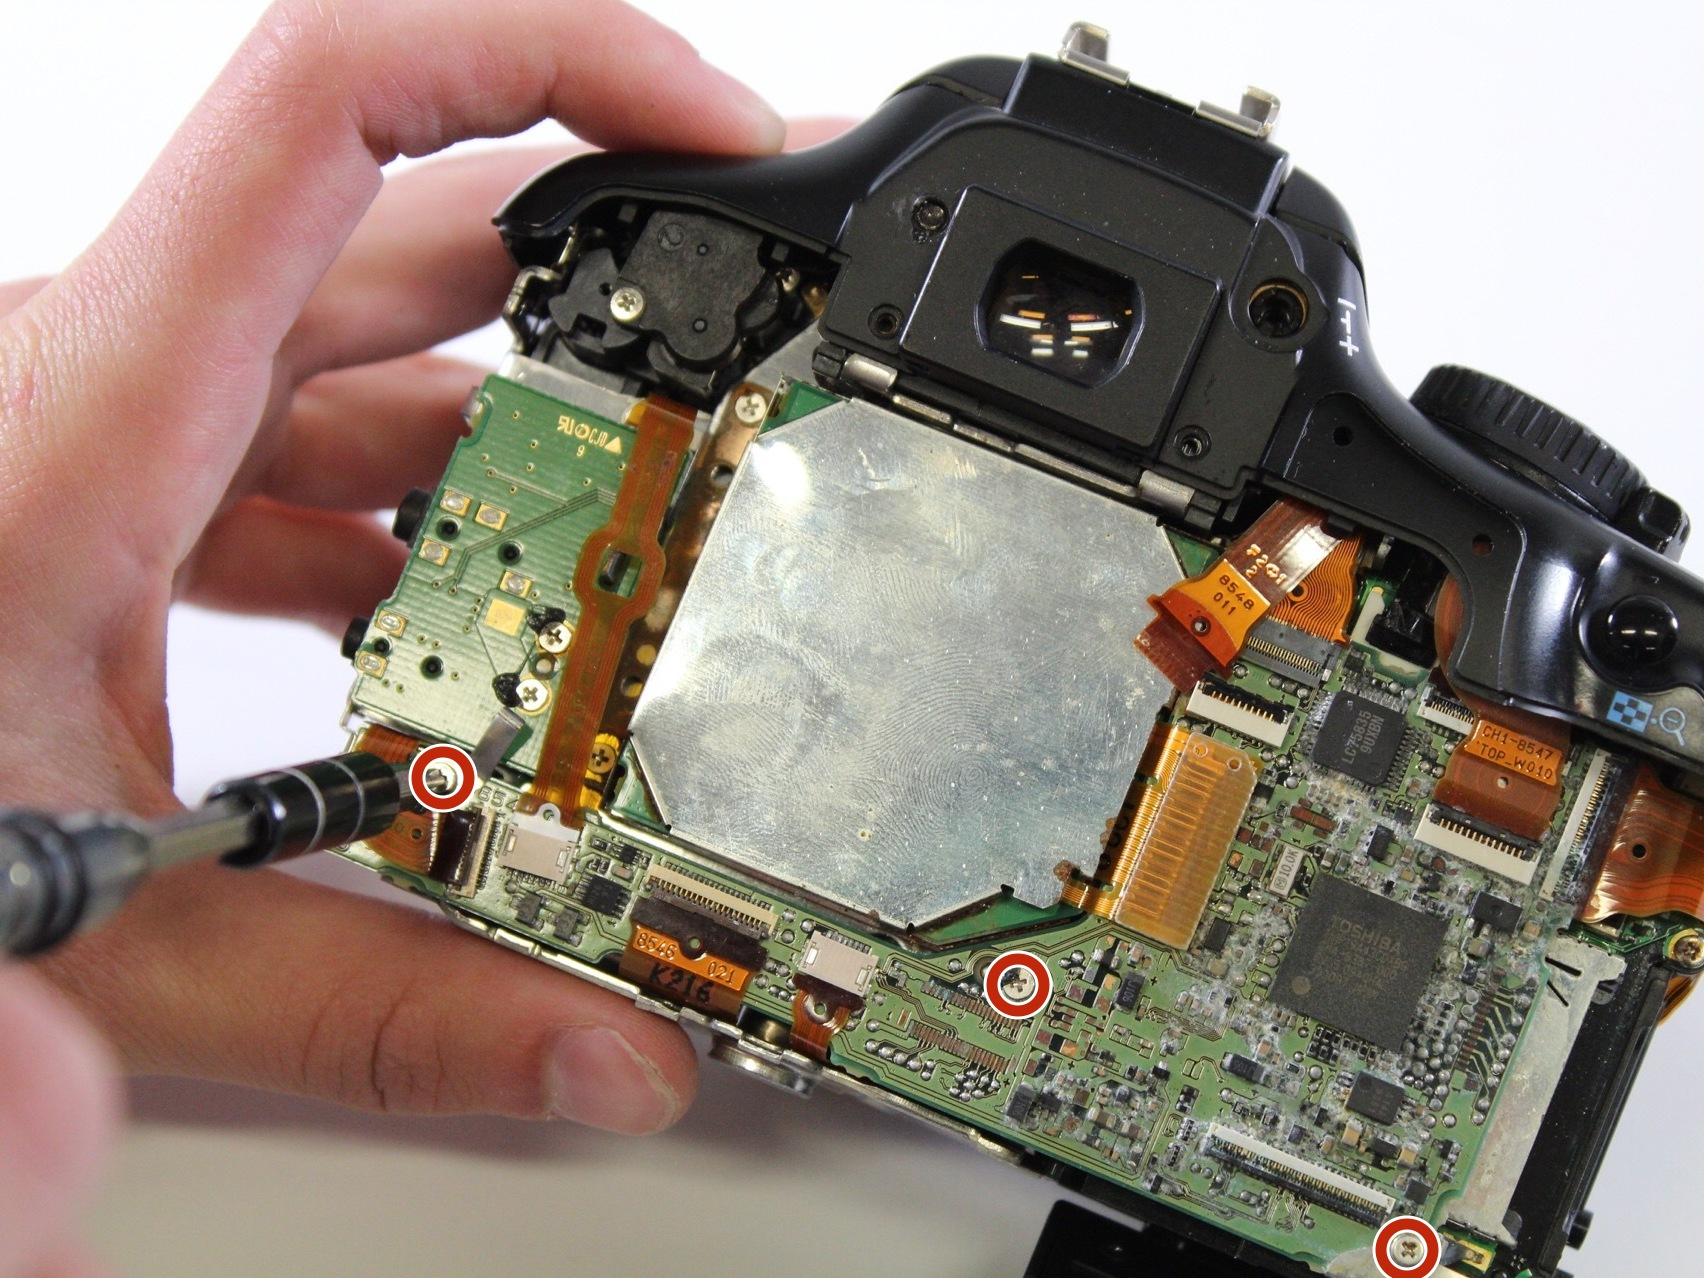 canon eos rebel xsi mother board replacement ifixit repair guide rh ifixit com EOS Rebel XSi 450D Canon 450D Manual